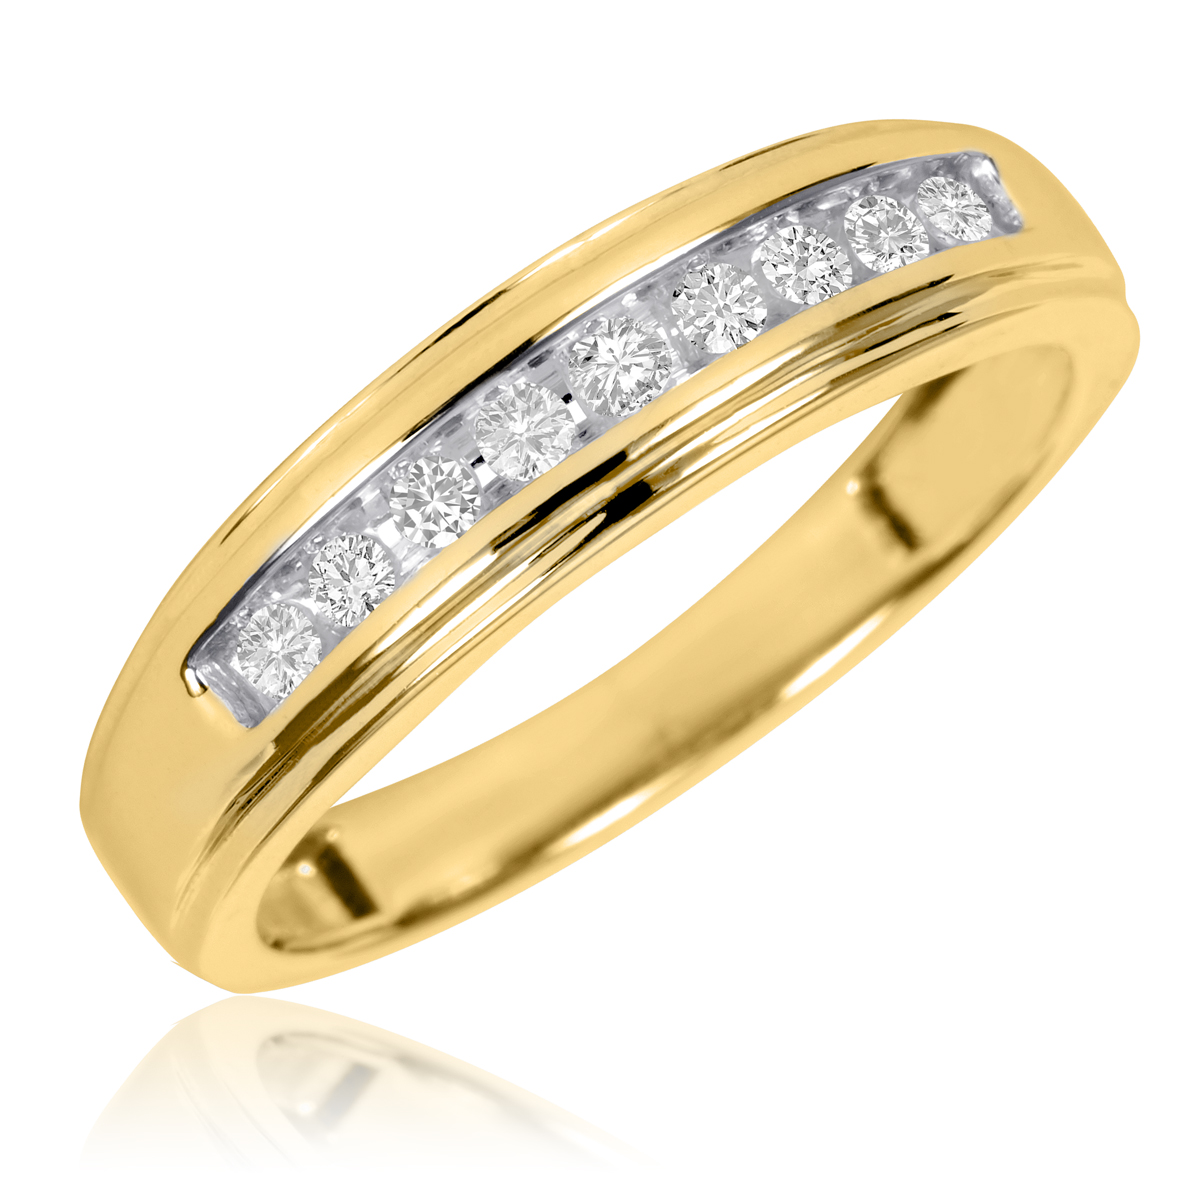 1/5 Carat T.W. Round Cut Diamond Ladies Wedding Ring 10K Yellow Gold- Size 8